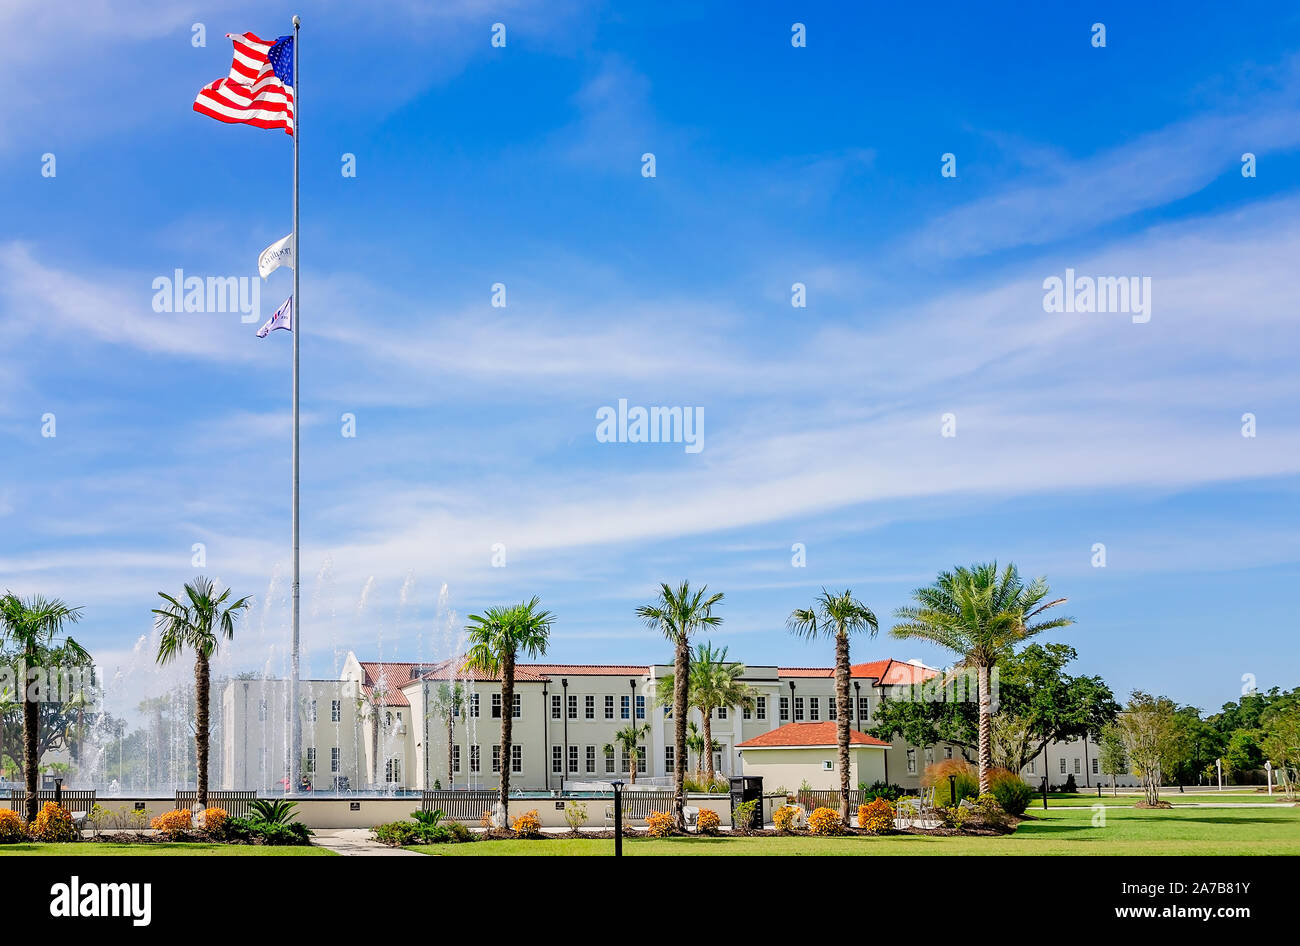 An American flag flies at the Centennial Plaza fountain, Oct. 22, 2019, in Gulfport, Mississippi. Stock Photo